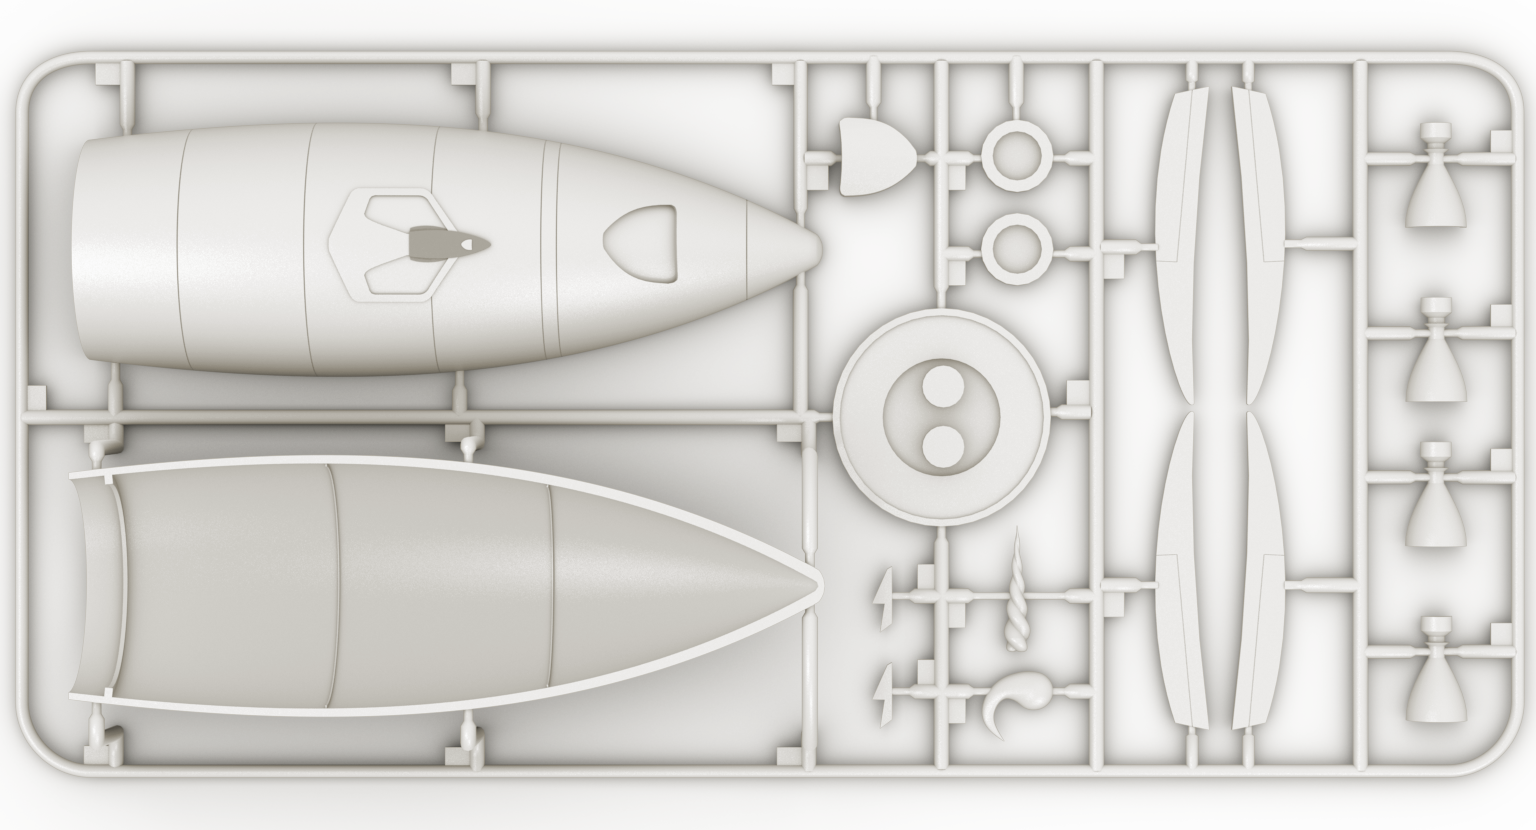 Build a Rocket Boy image